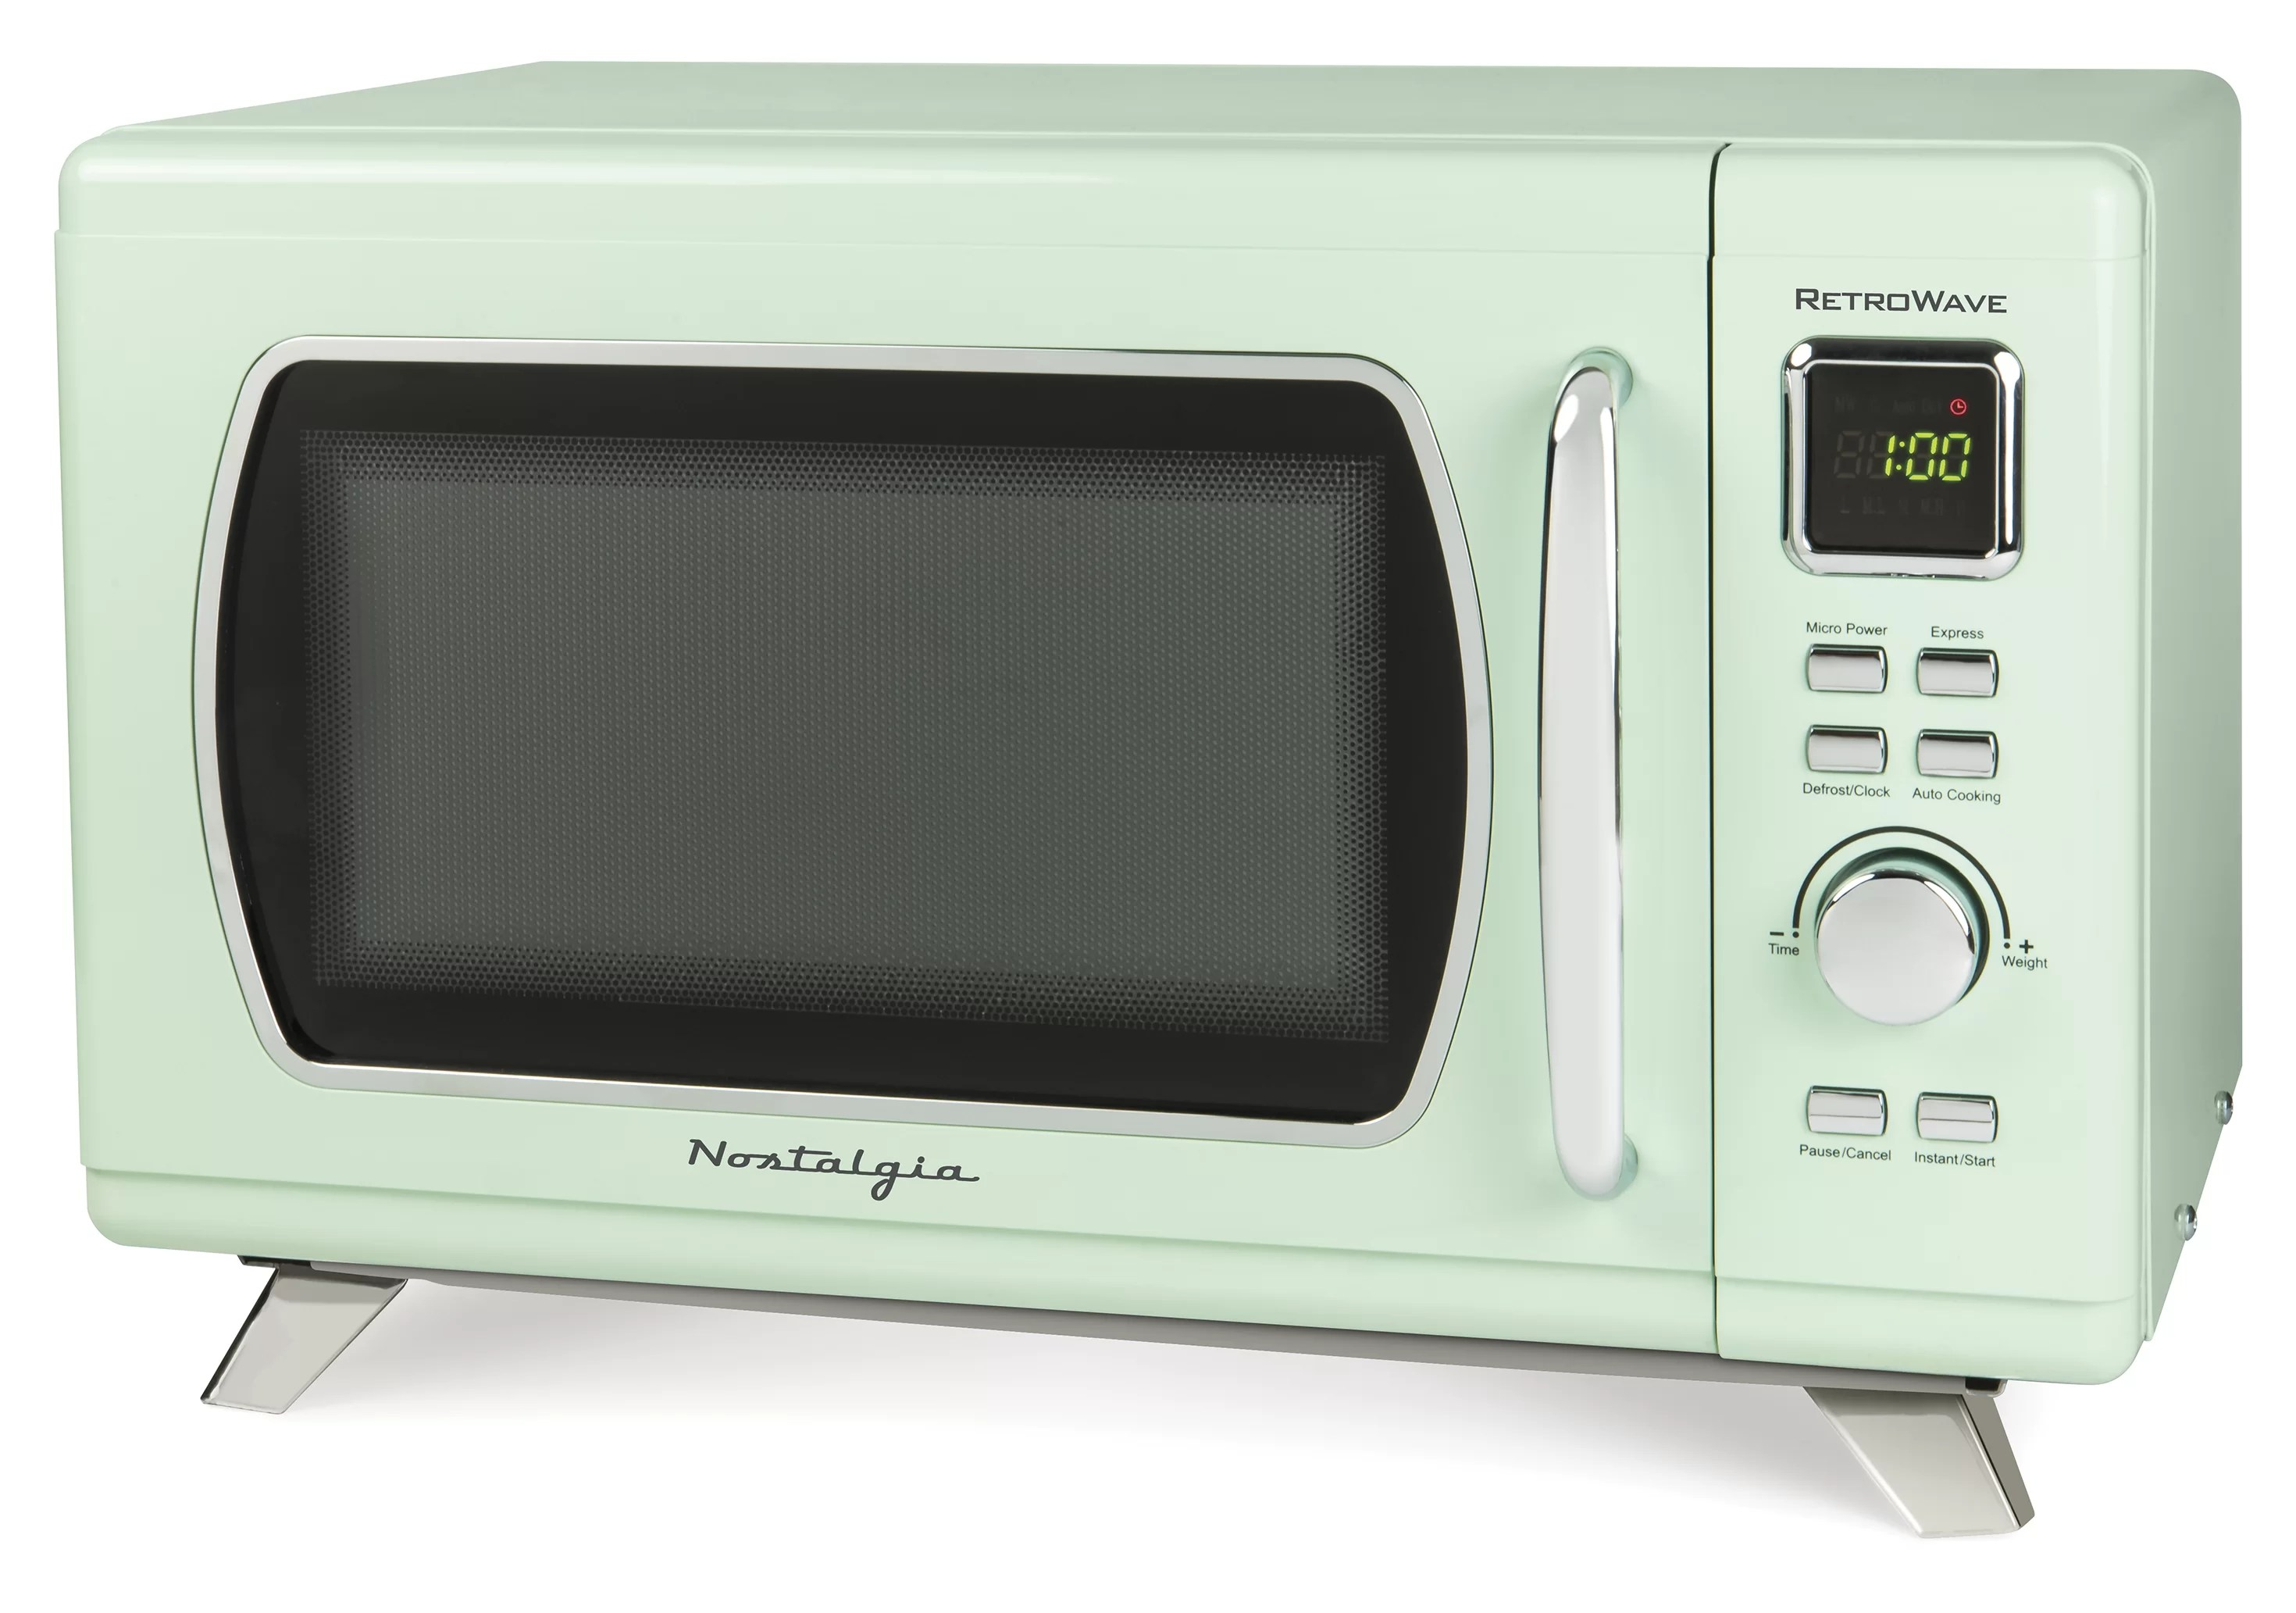 nostalgia mid century retro 0 9 cu ft 900 watt countertop microwave oven with led display 5 power levels 8 cook settings